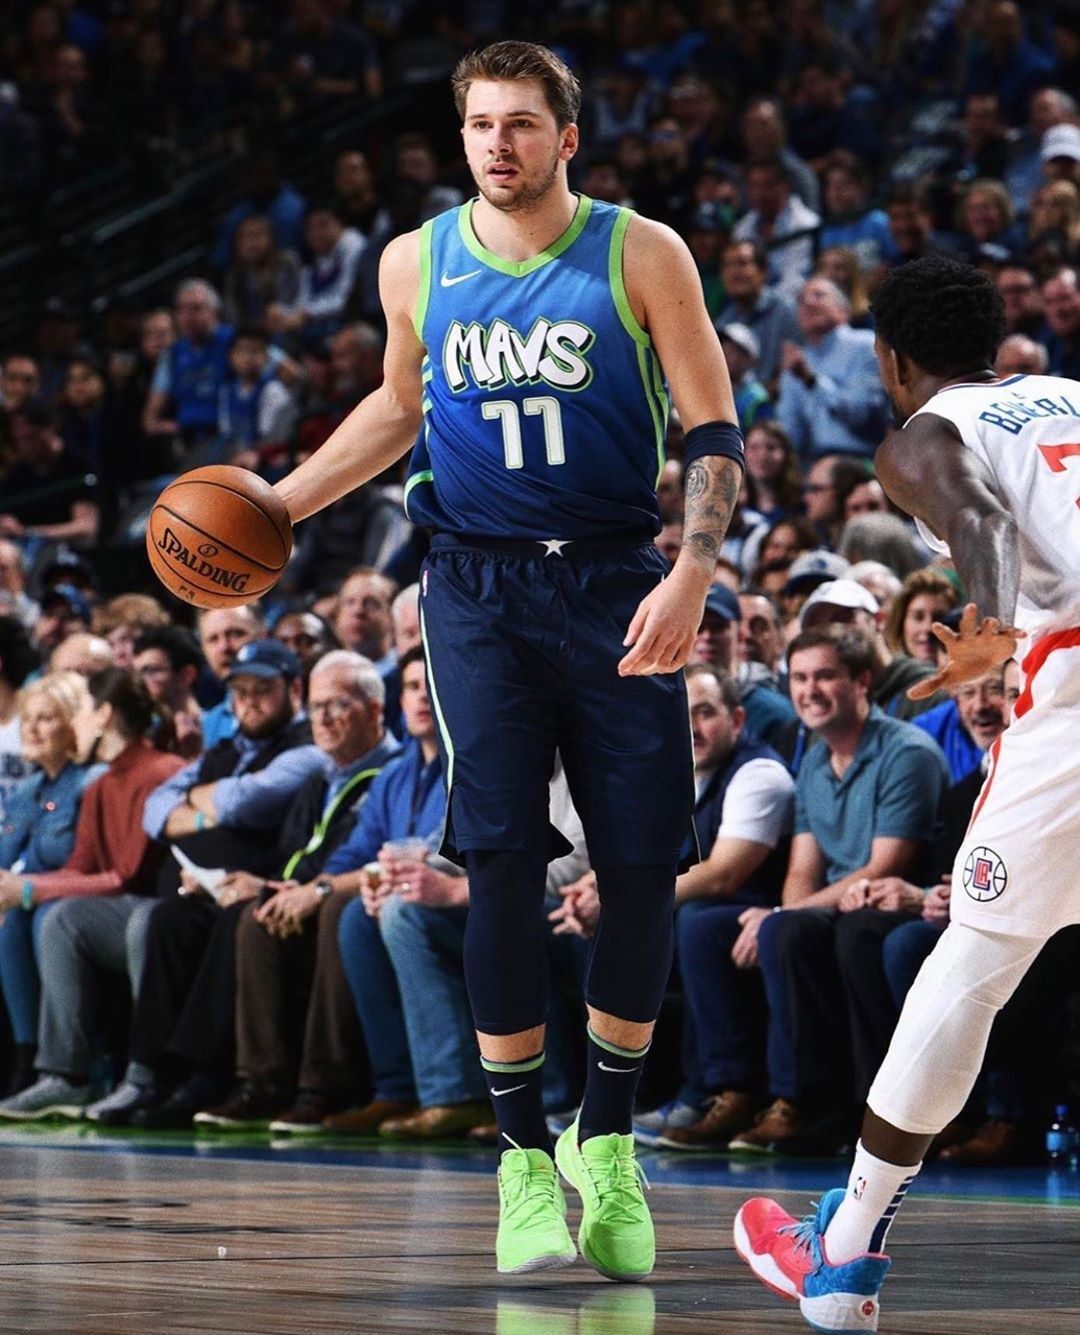 Nba Jersey Center On Instagram Mavericks Wearing Their City Jerseys Tonight Vs The Clippers These Are My Least Fa In 2020 Best Nba Players Nba Jersey Mvp Basketball